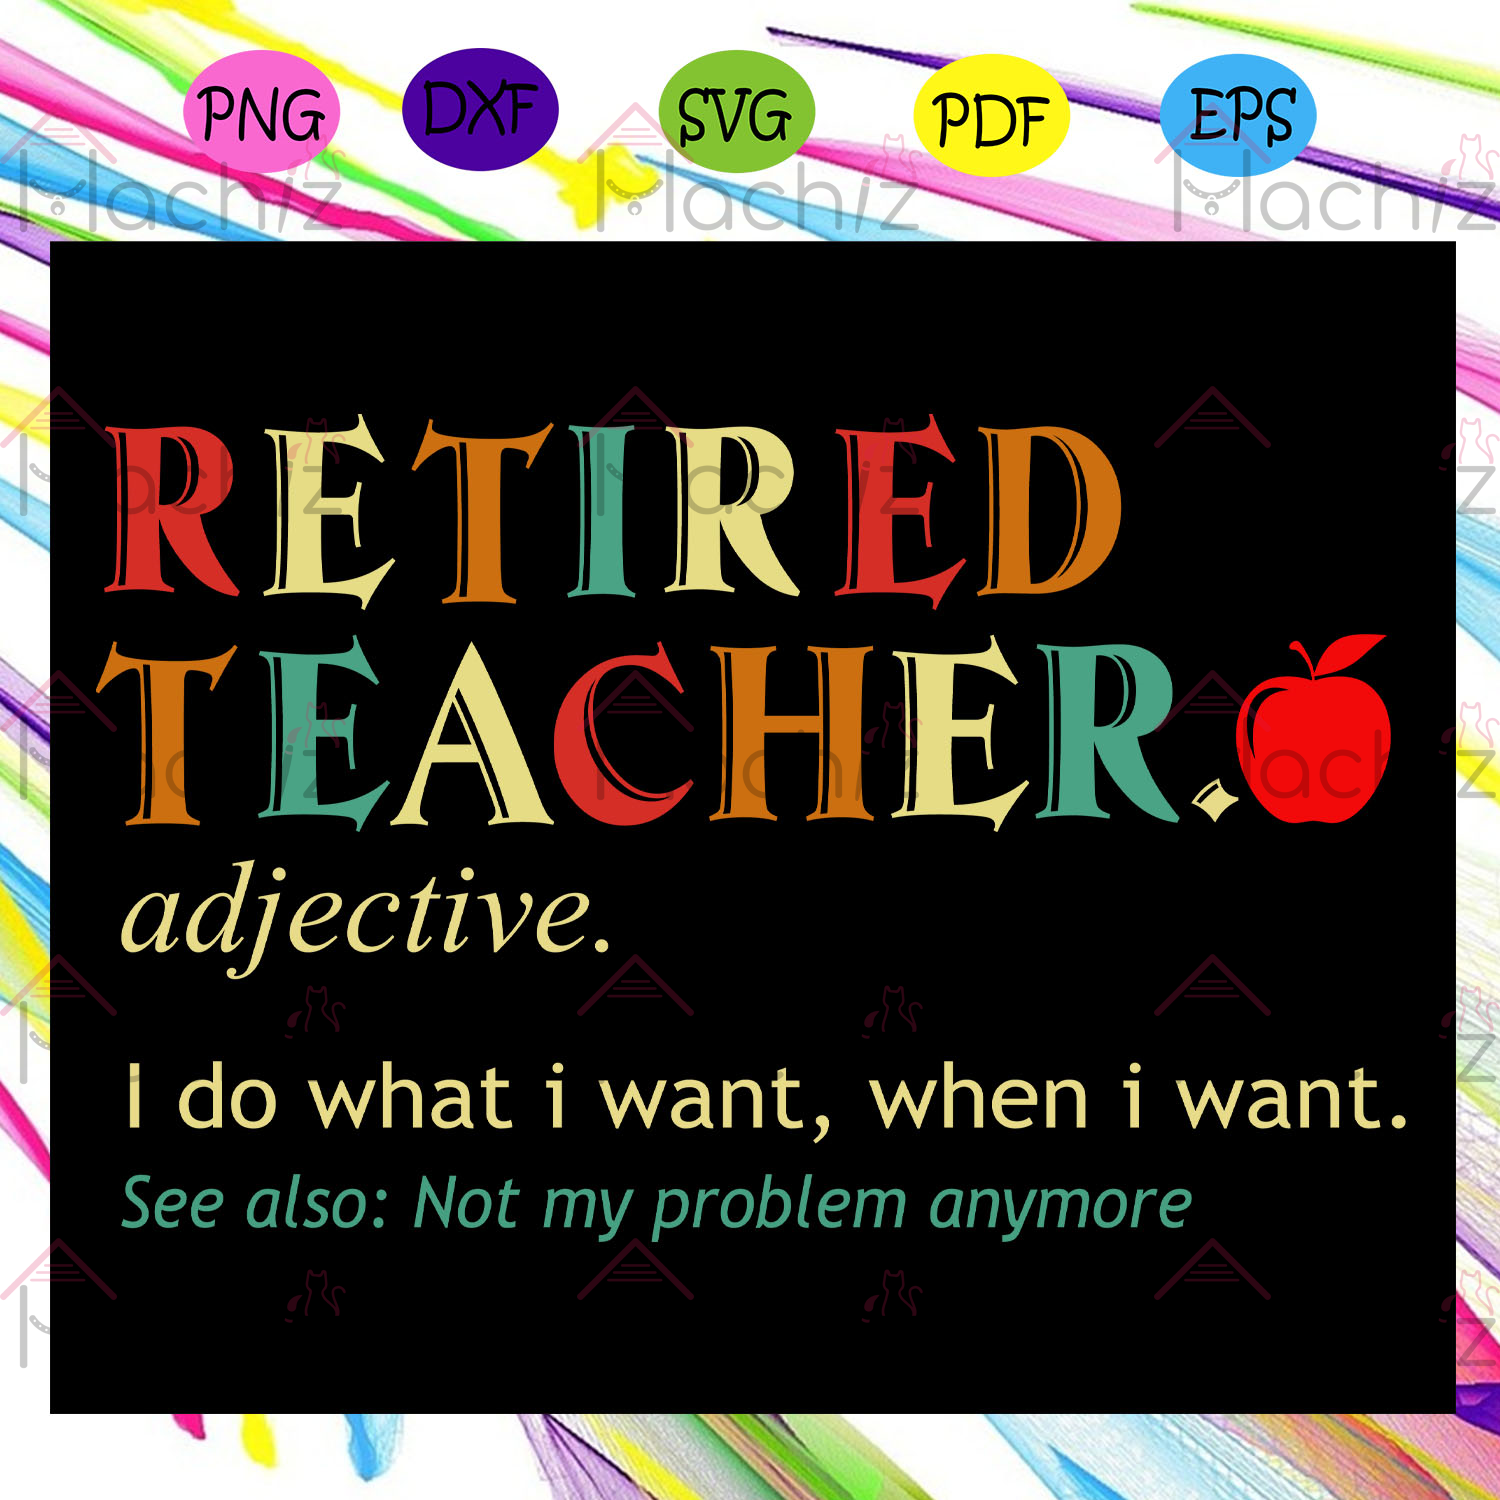 Retired teacher definition teacher svg, files for silhouette, files for cricut, svg, dxf, eps, png instant download